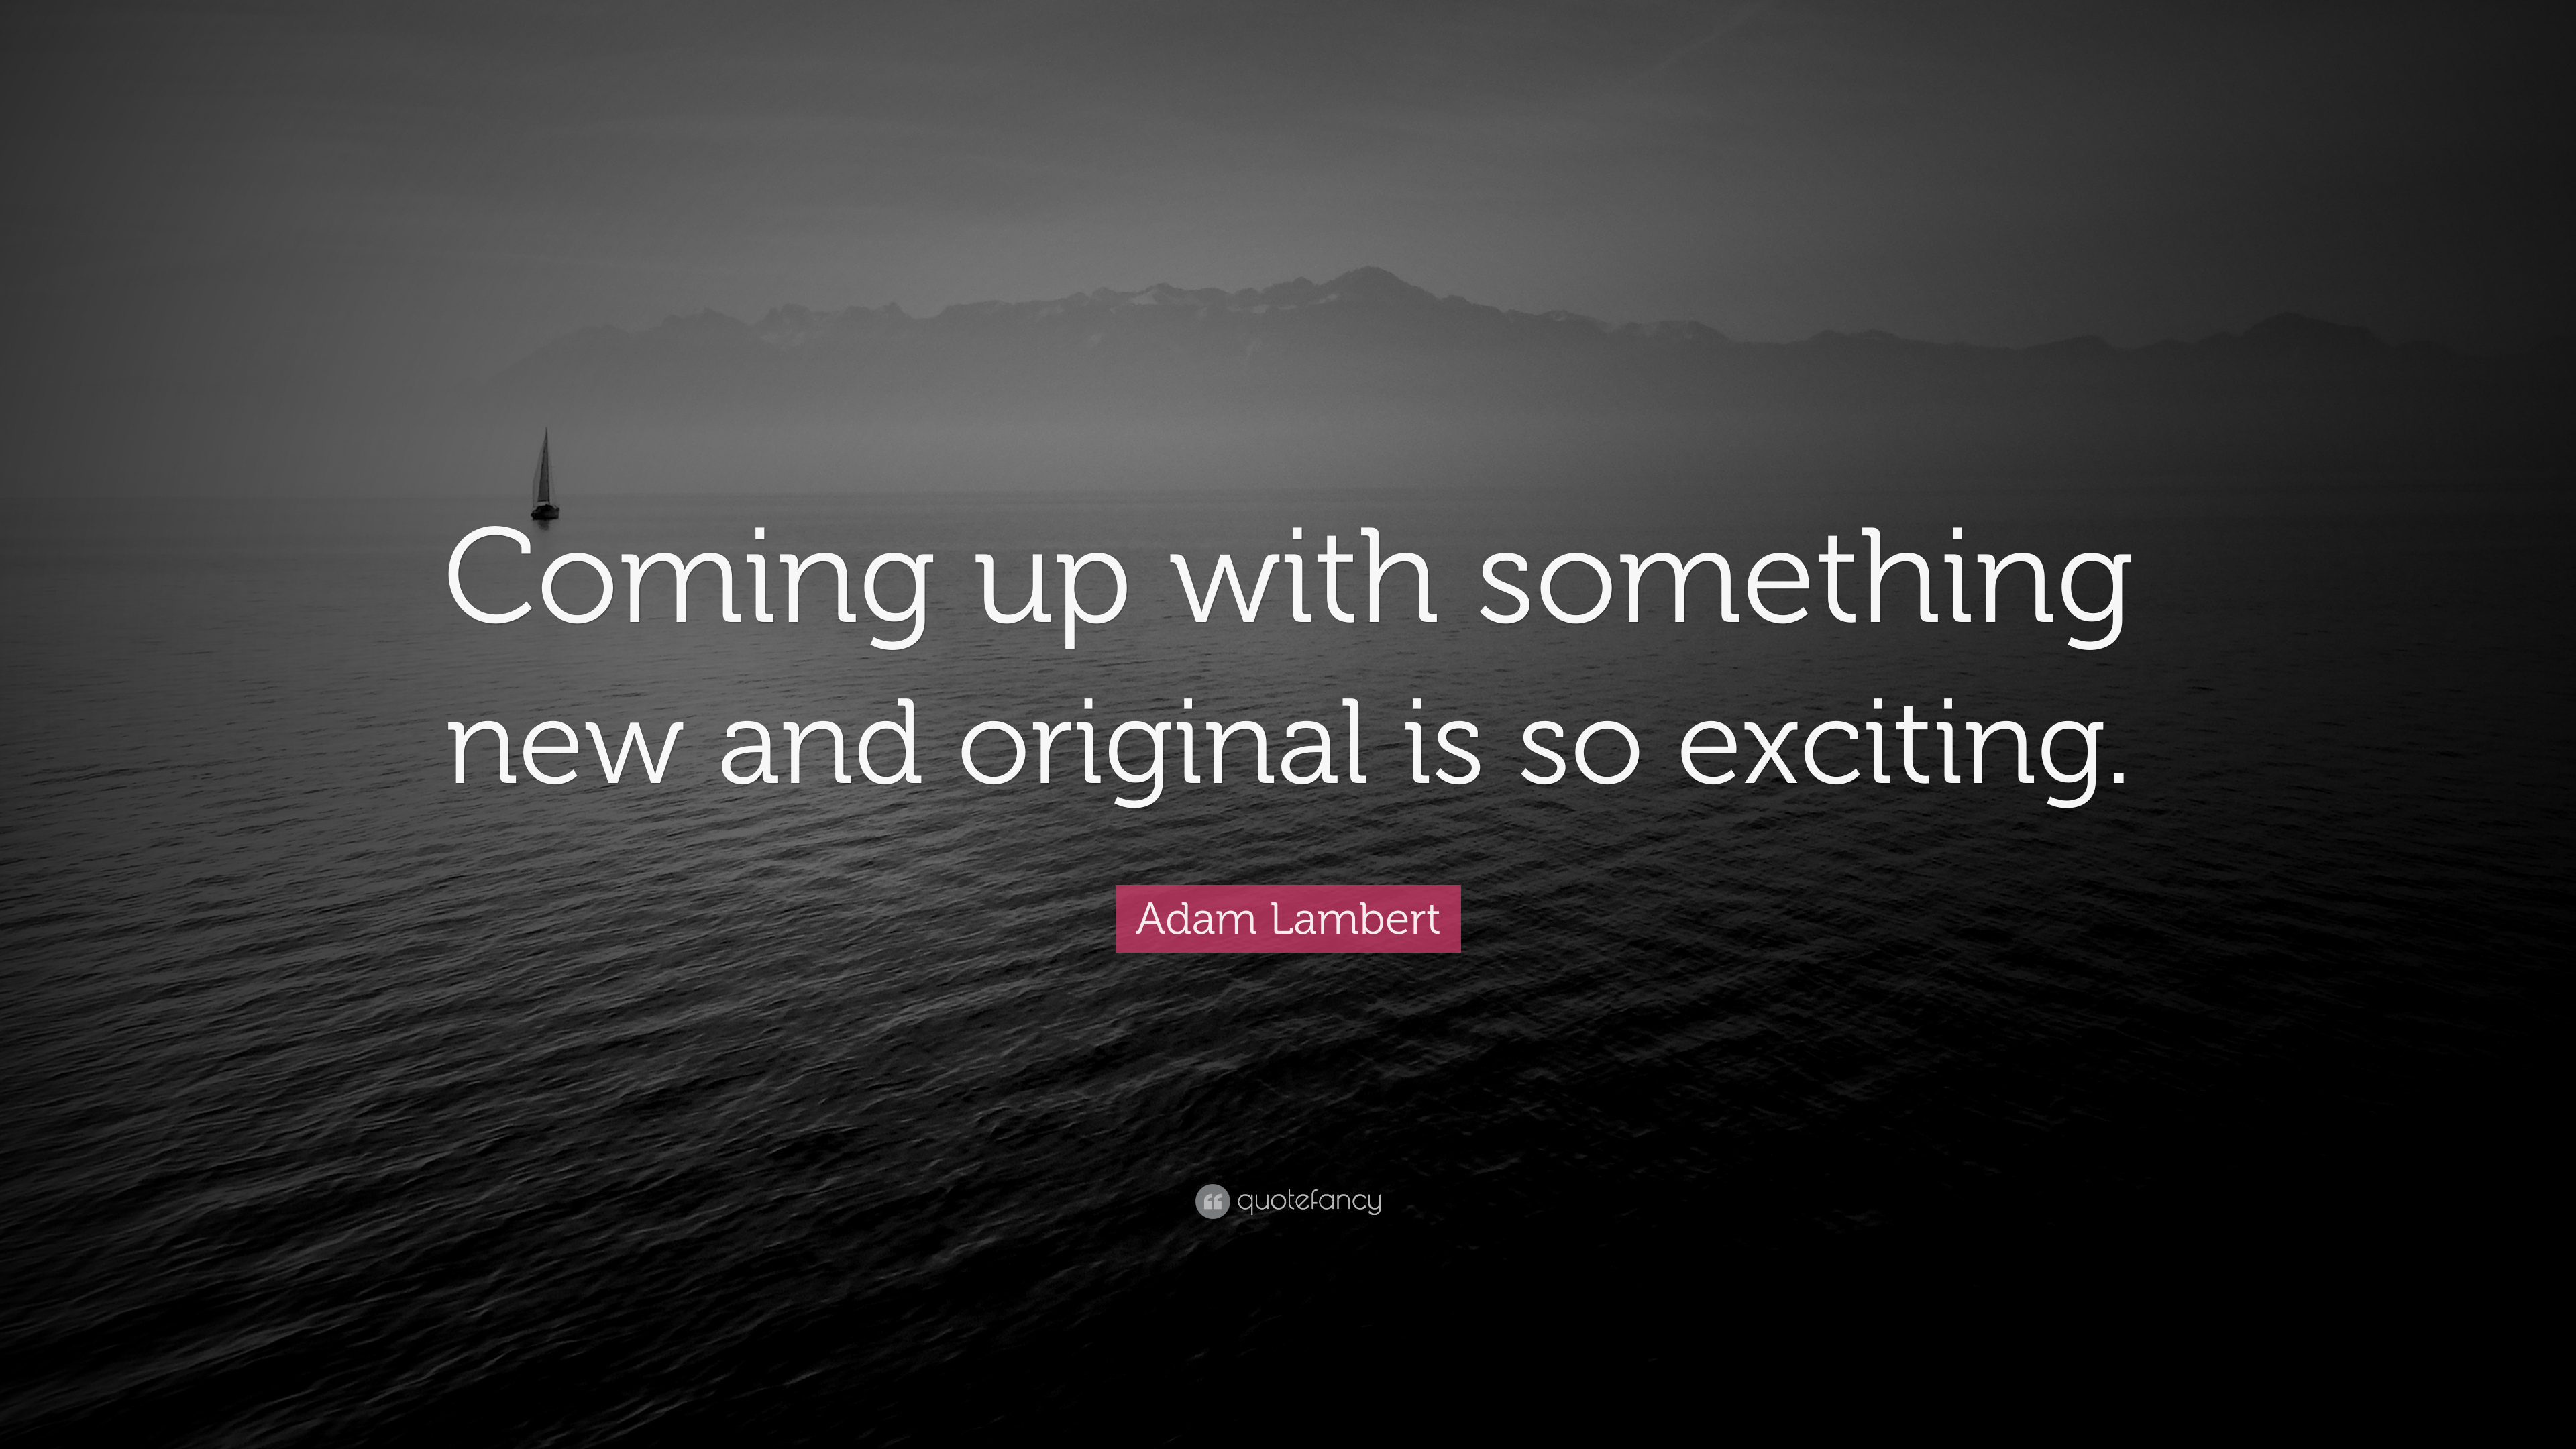 Adam Lambert Quote Coming Up With Something New And Original Is So Exciting 7 Wallpapers Quotefancy